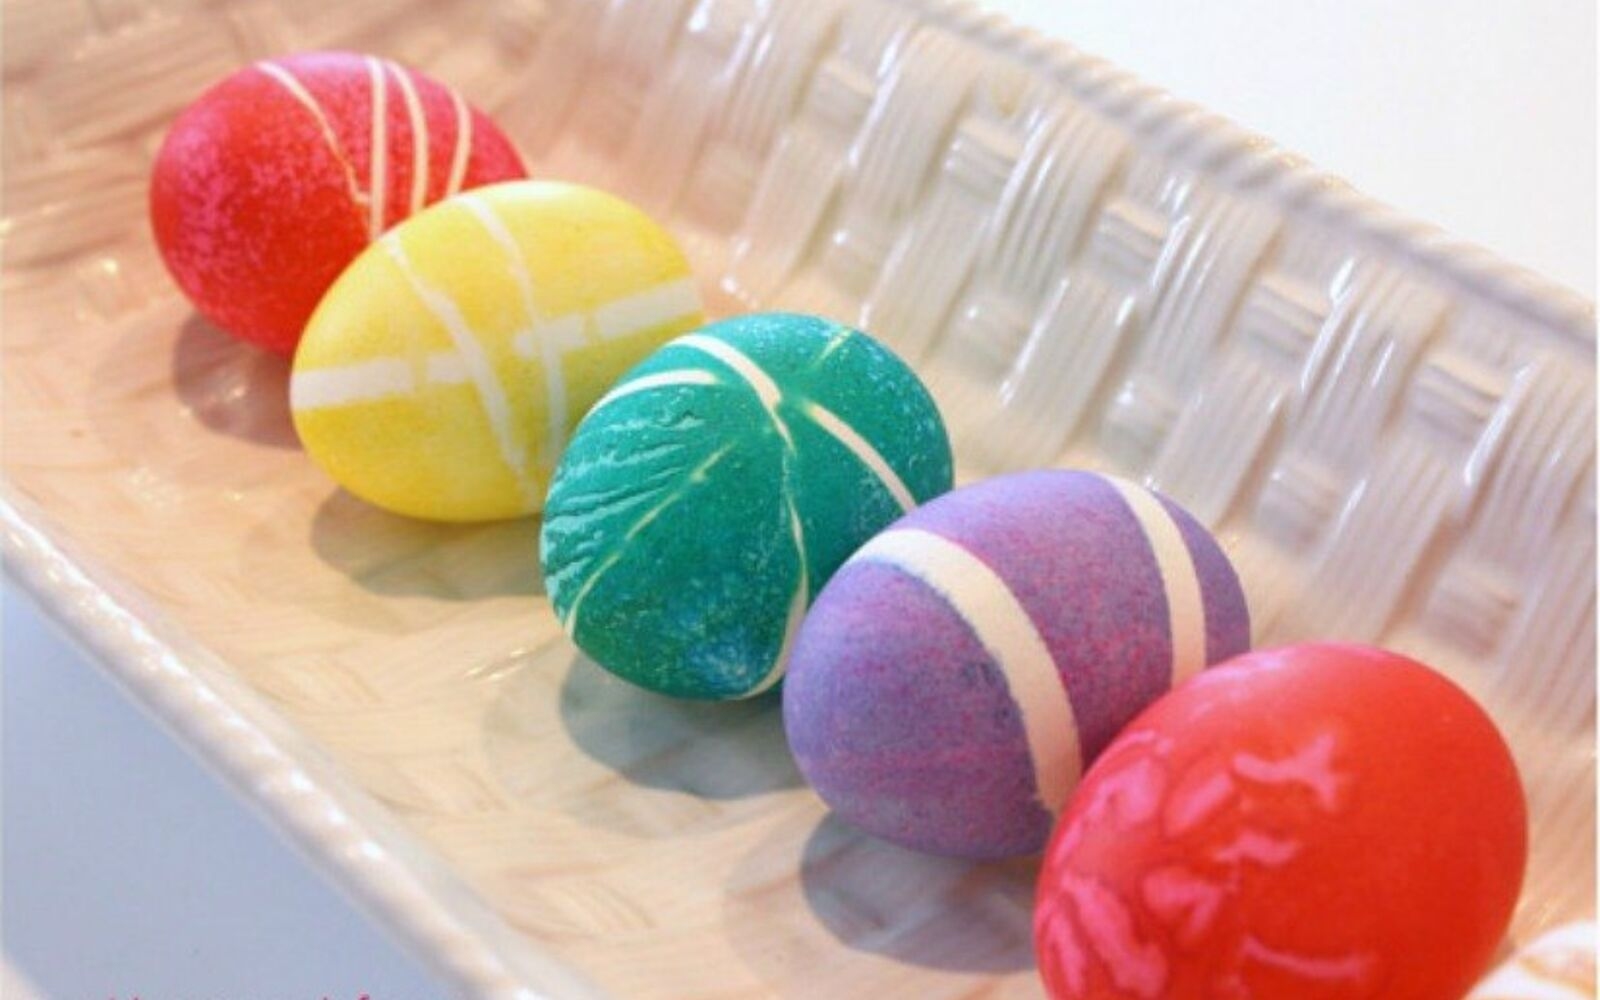 s 23 totally different ways to decorate real eggs this easter, crafts, easter decorations, Wrap them in rubber bands before dying